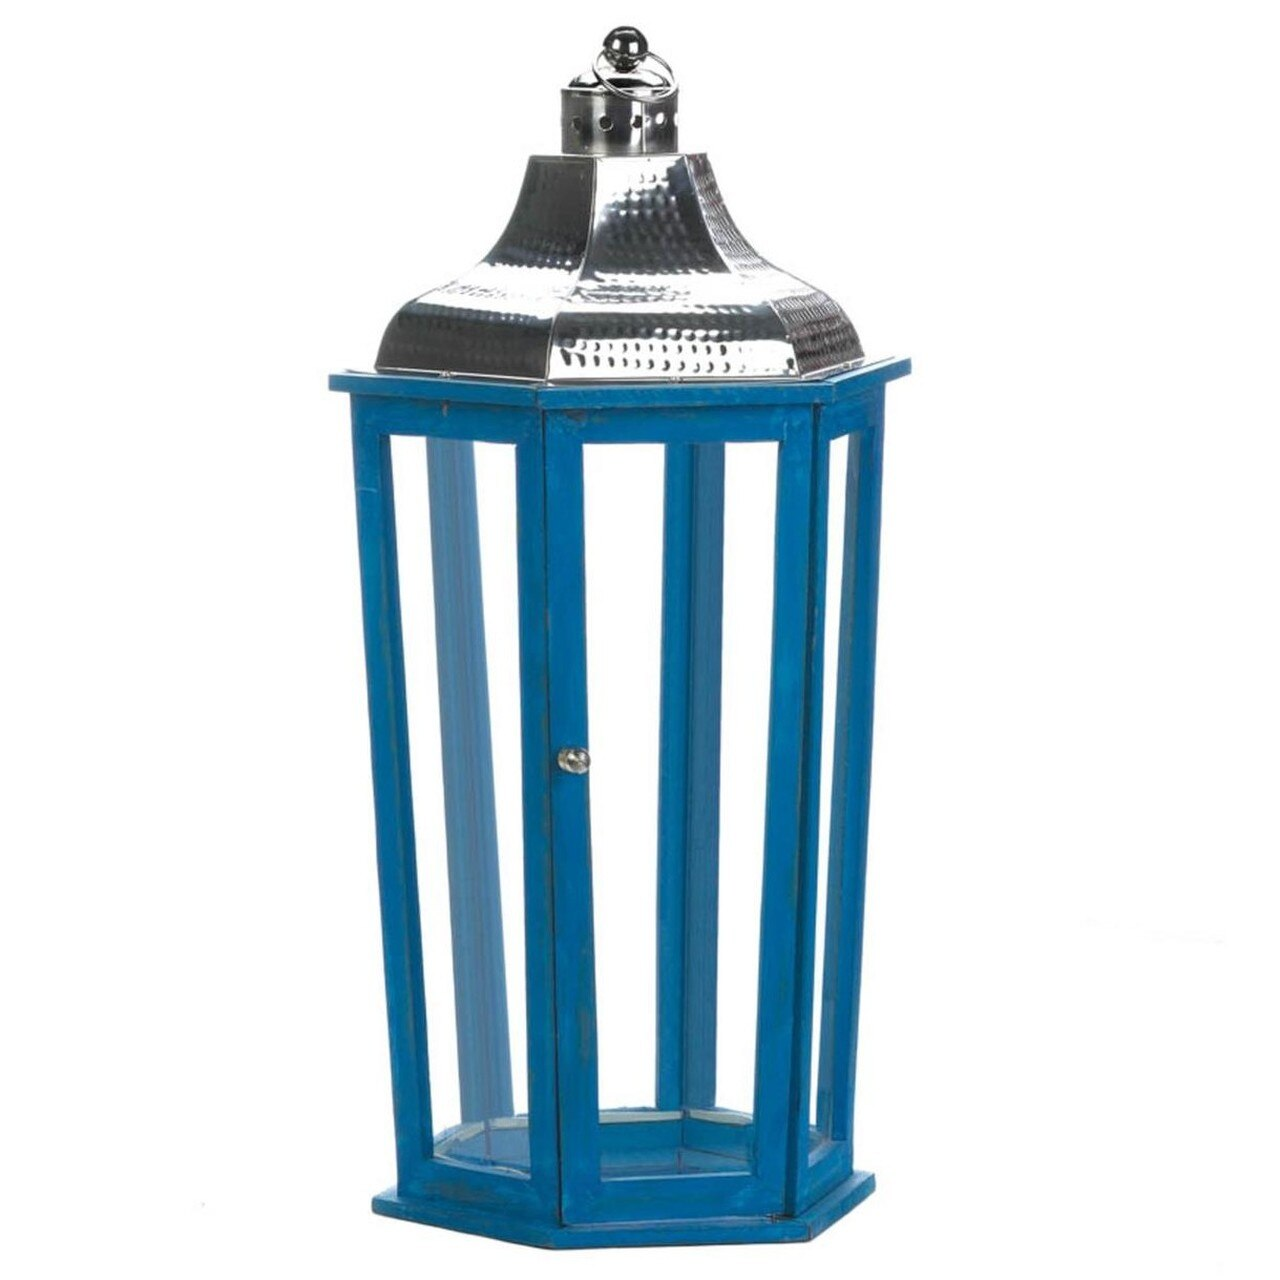 Blue Wood Candle Lantern with Stainless Steel Top - 24 inches